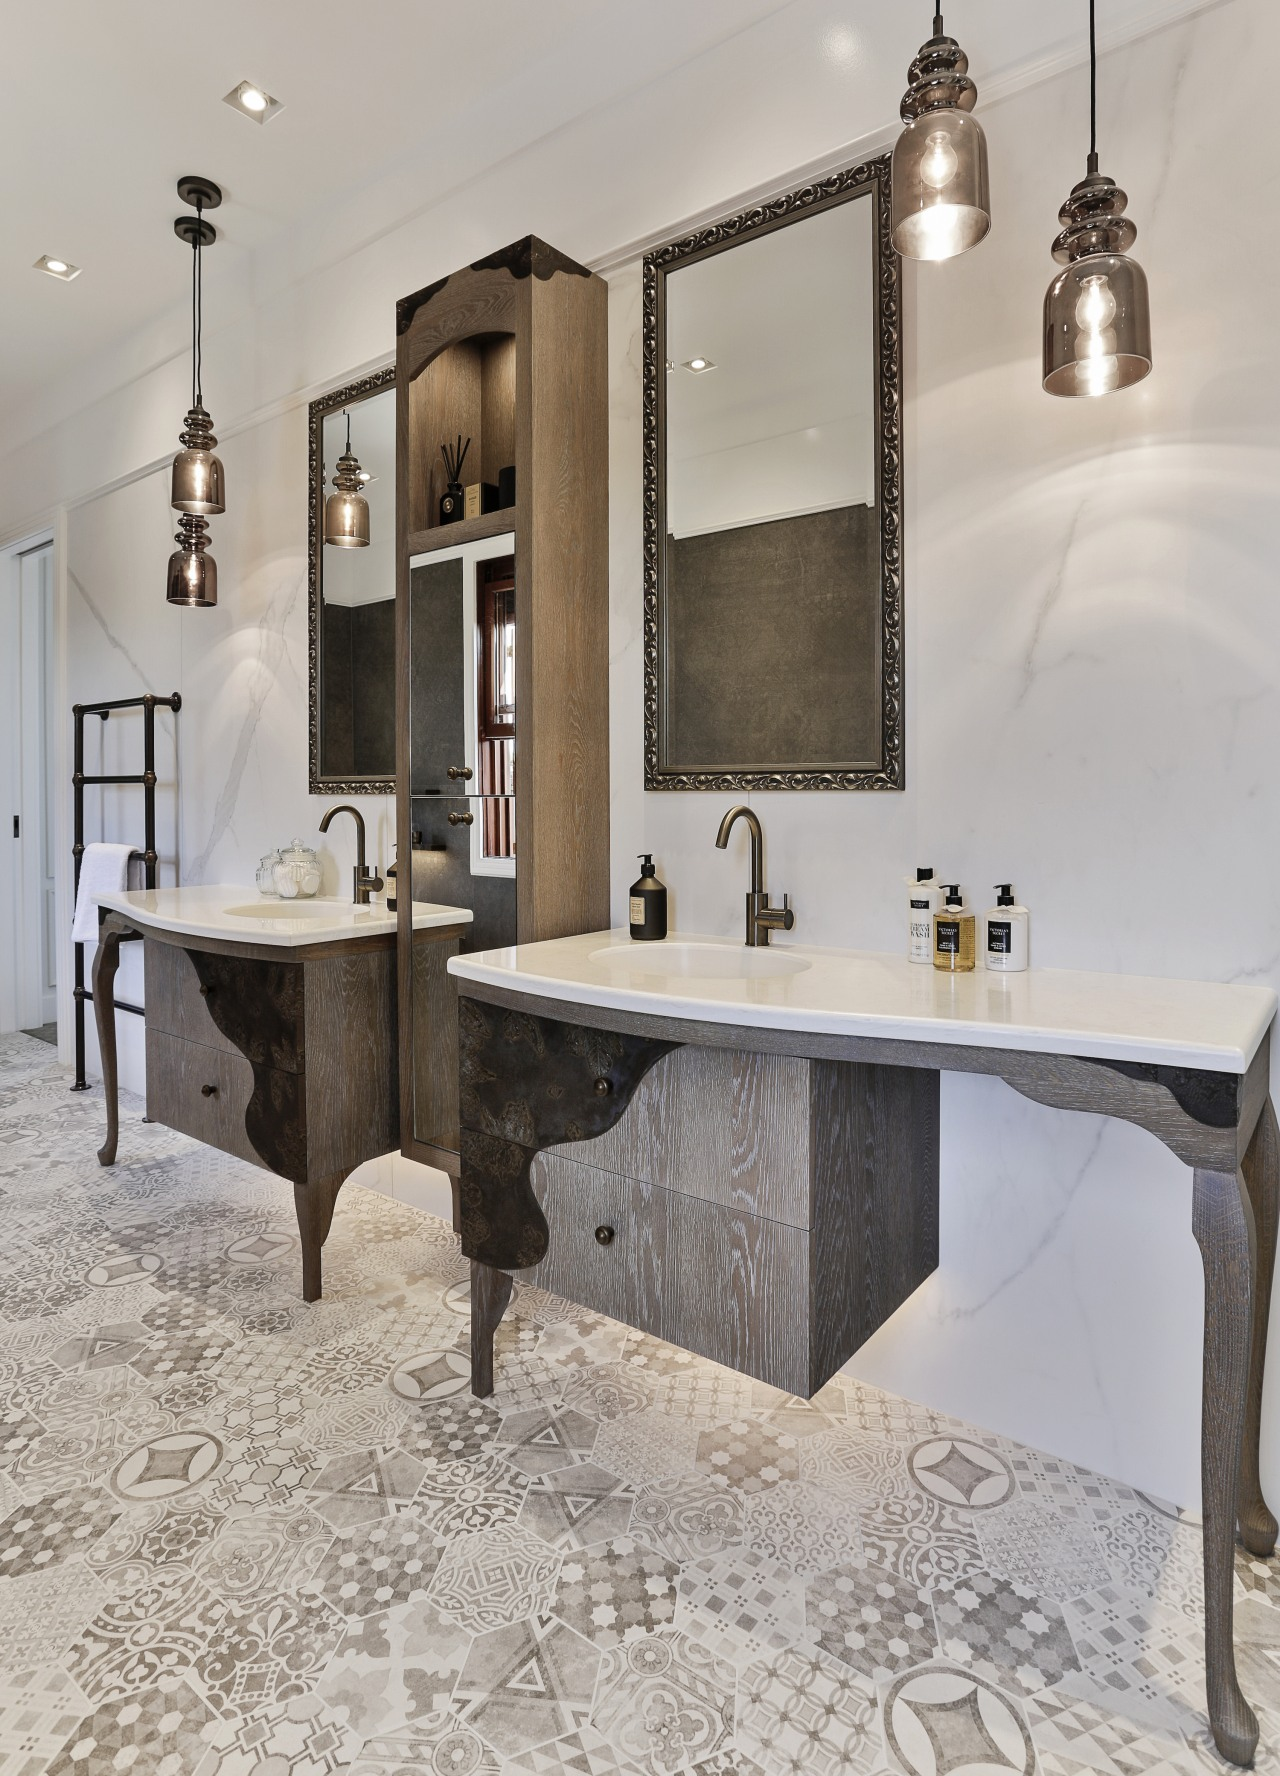 Designer Shane George designed a curved overlay pattern bathroom, countertop, floor, flooring, furniture, interior design, room, sink, tap, gray